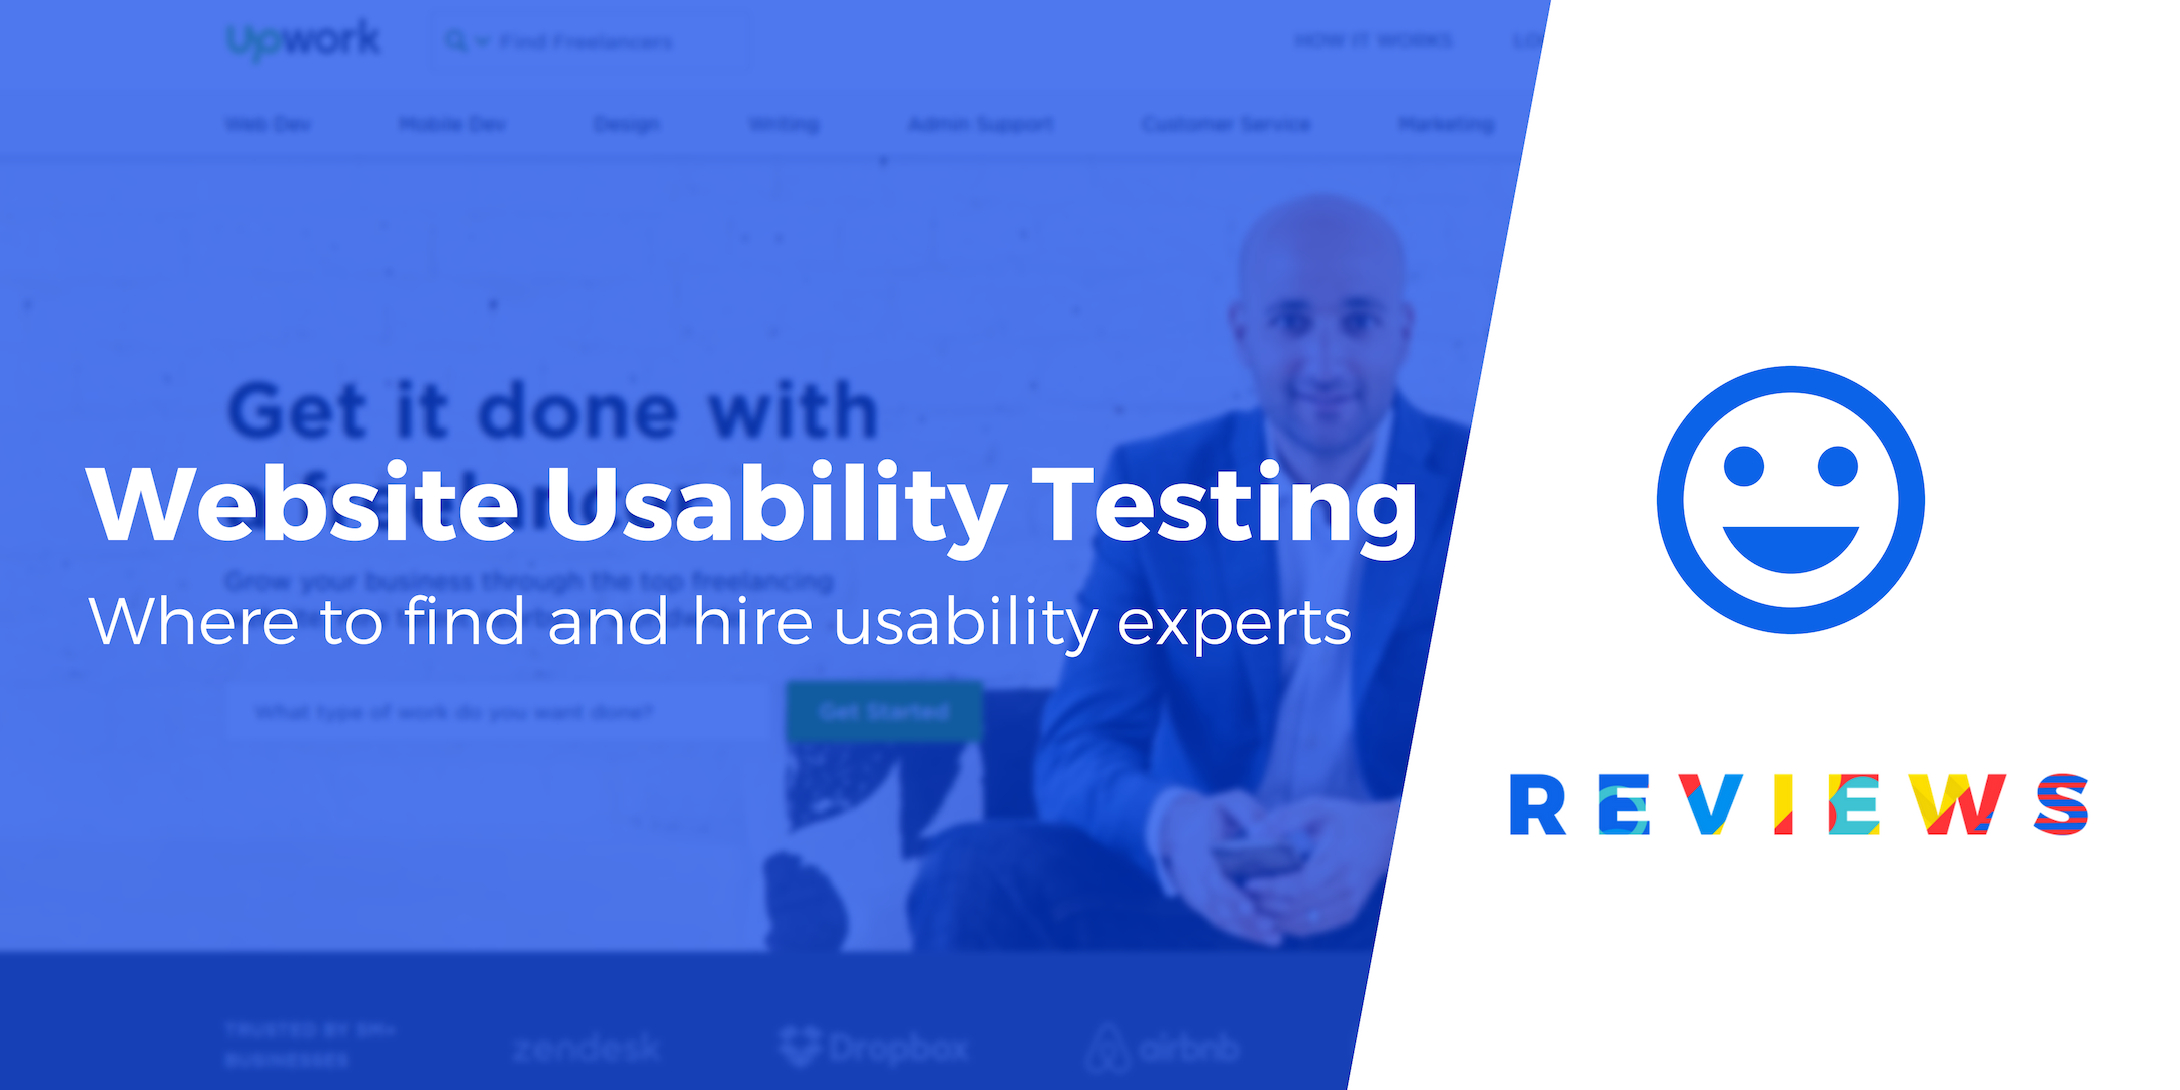 Website Usability Testing